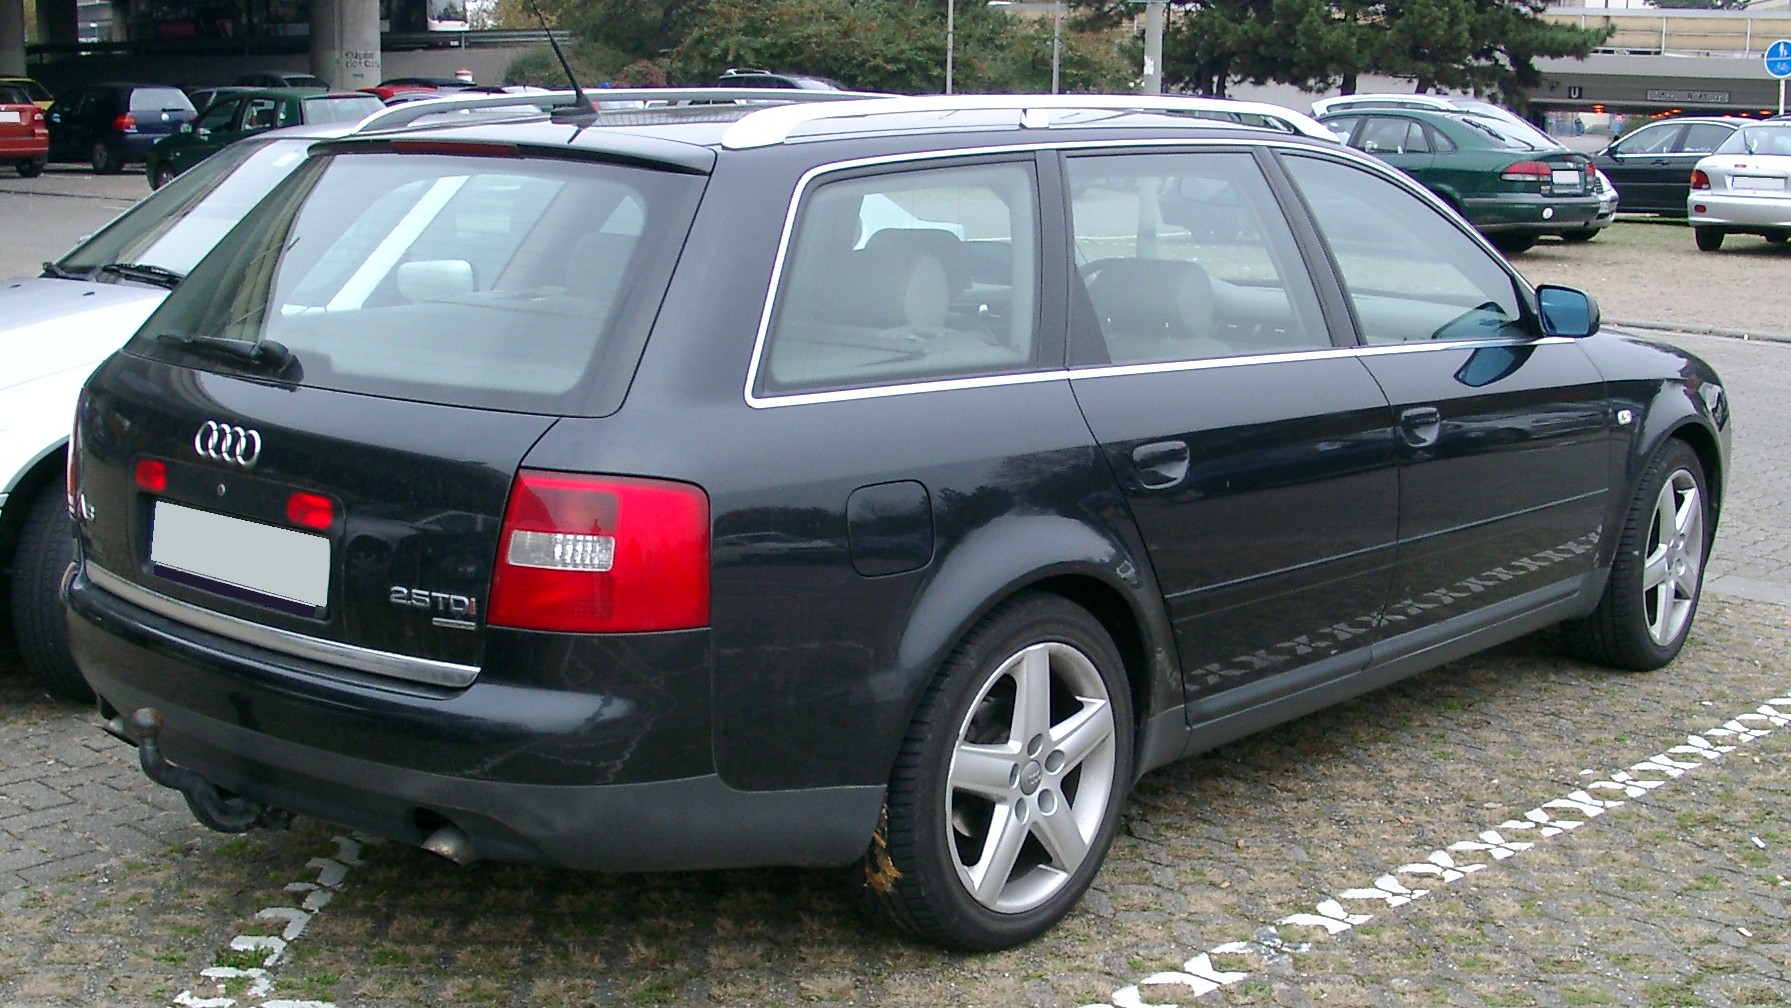 2000 Audi A6 avant (4b,c5) – pictures, information and specs - Auto